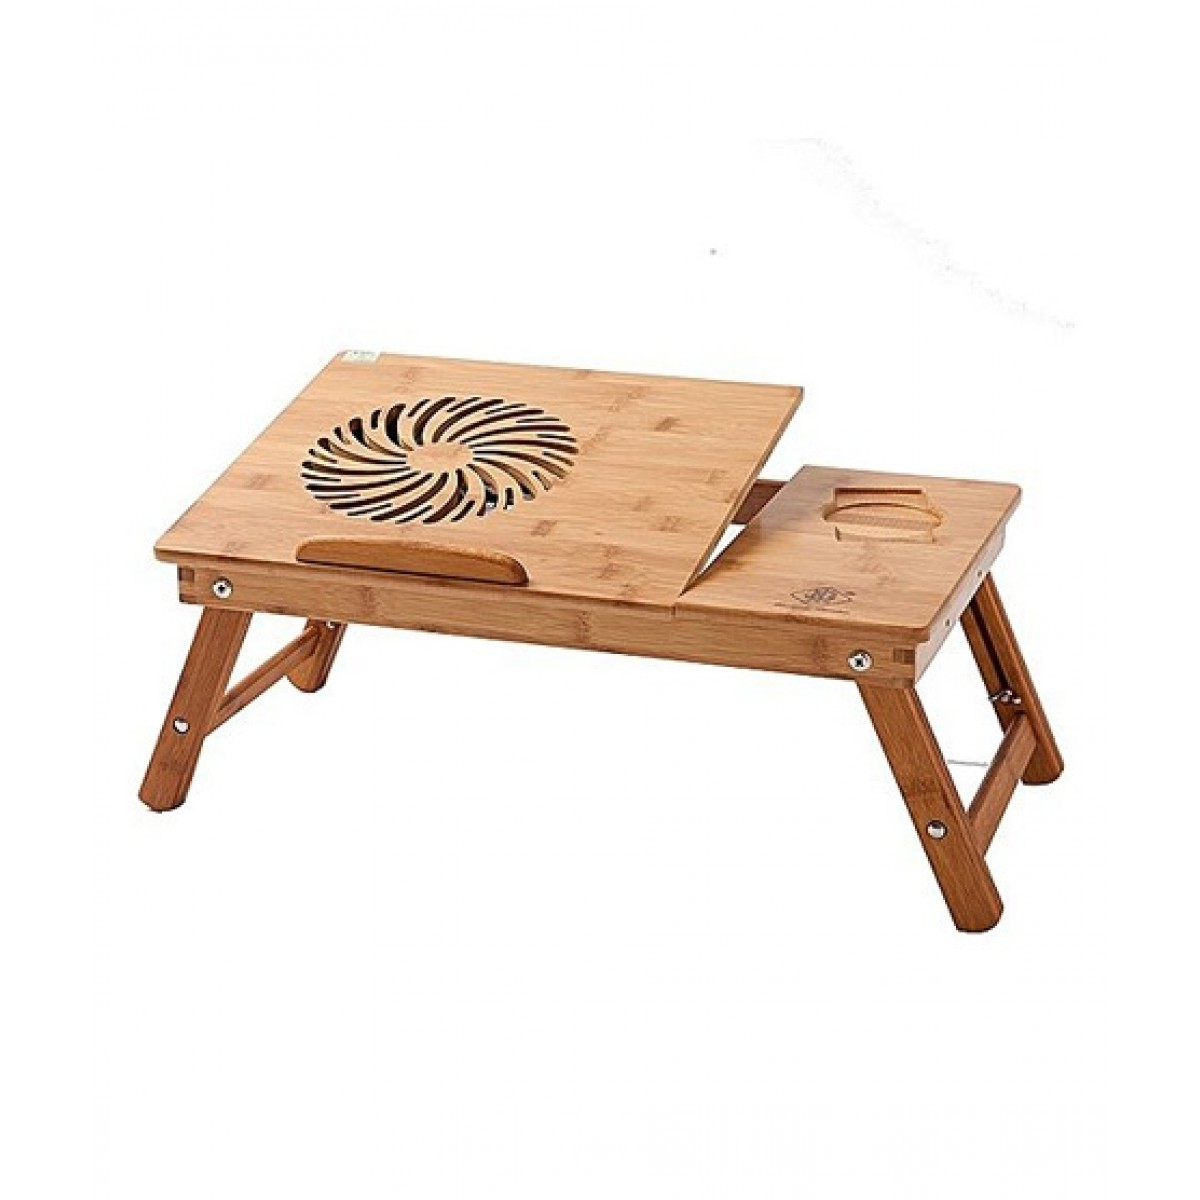 wood_table_1_fan.jpg